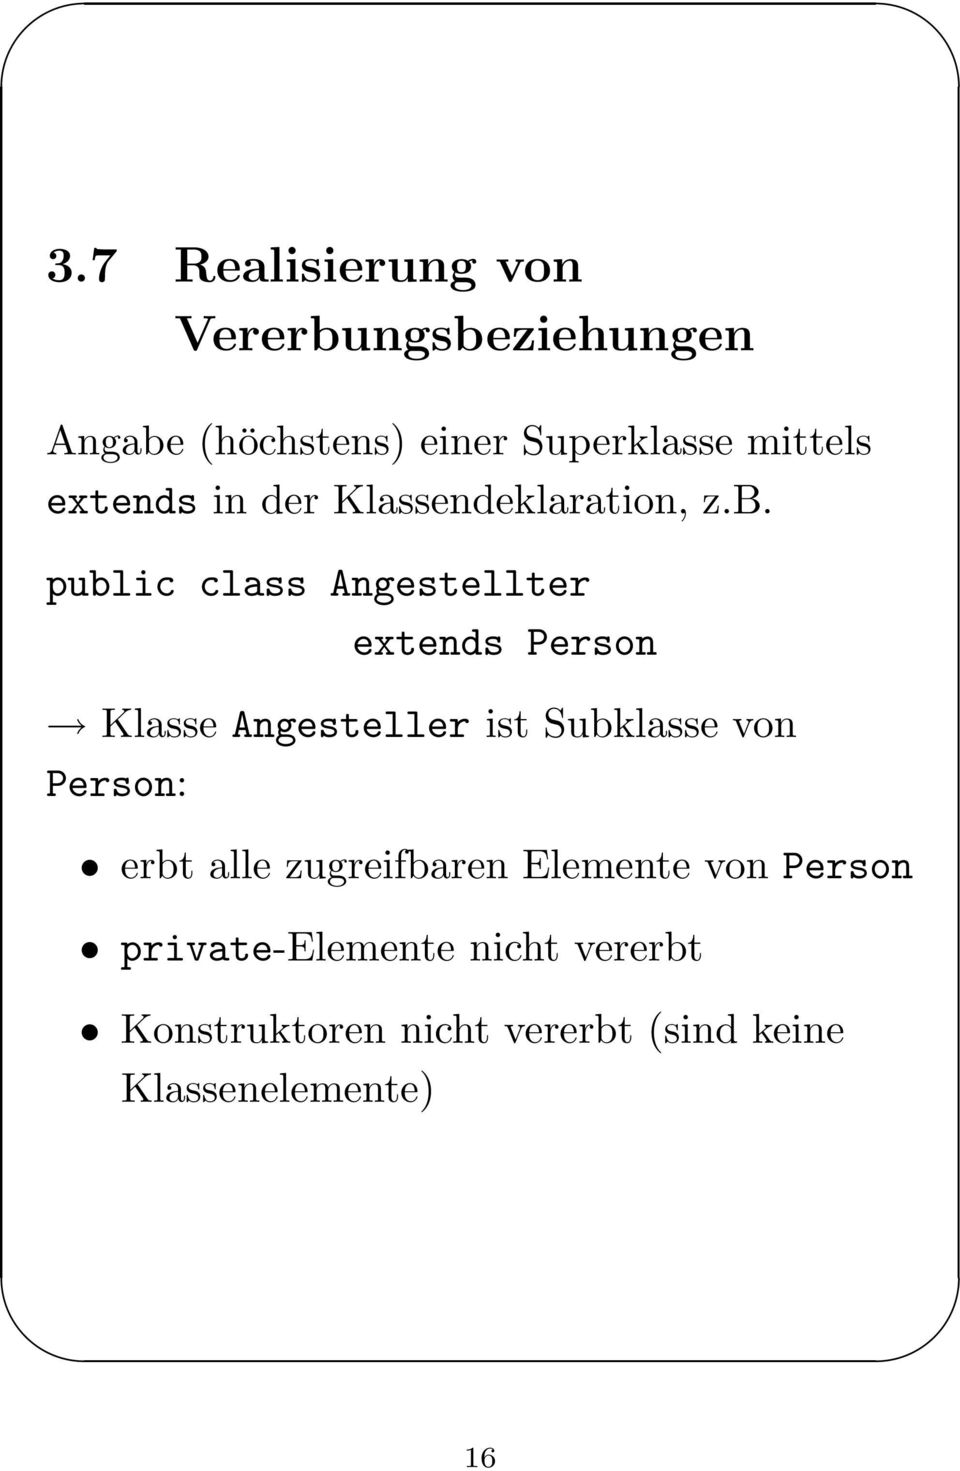 public class Angestellter extends Person Klasse Angesteller ist Subklasse von Person: